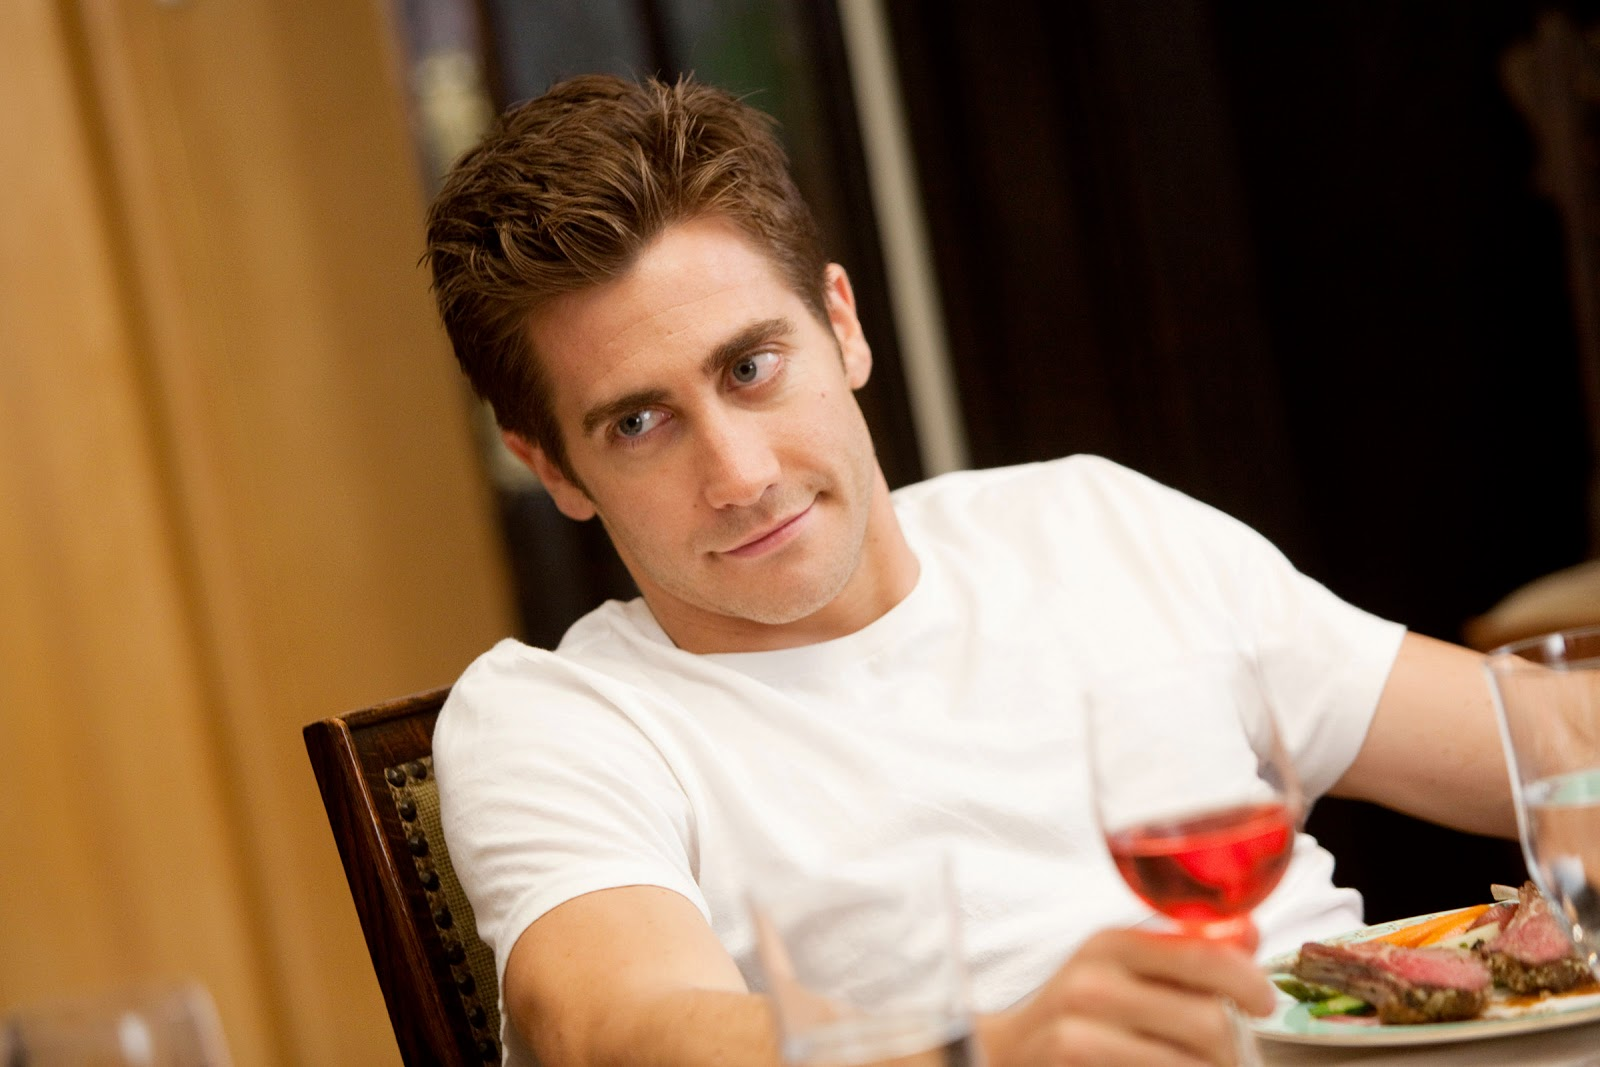 http://4.bp.blogspot.com/_kf6Cmm7gIGk/TUa2kMK0d7I/AAAAAAAACtg/6Ex0duPqhps/s1600/Jake+Gyllenhaal+Love+and+Other+Drugs.jpg